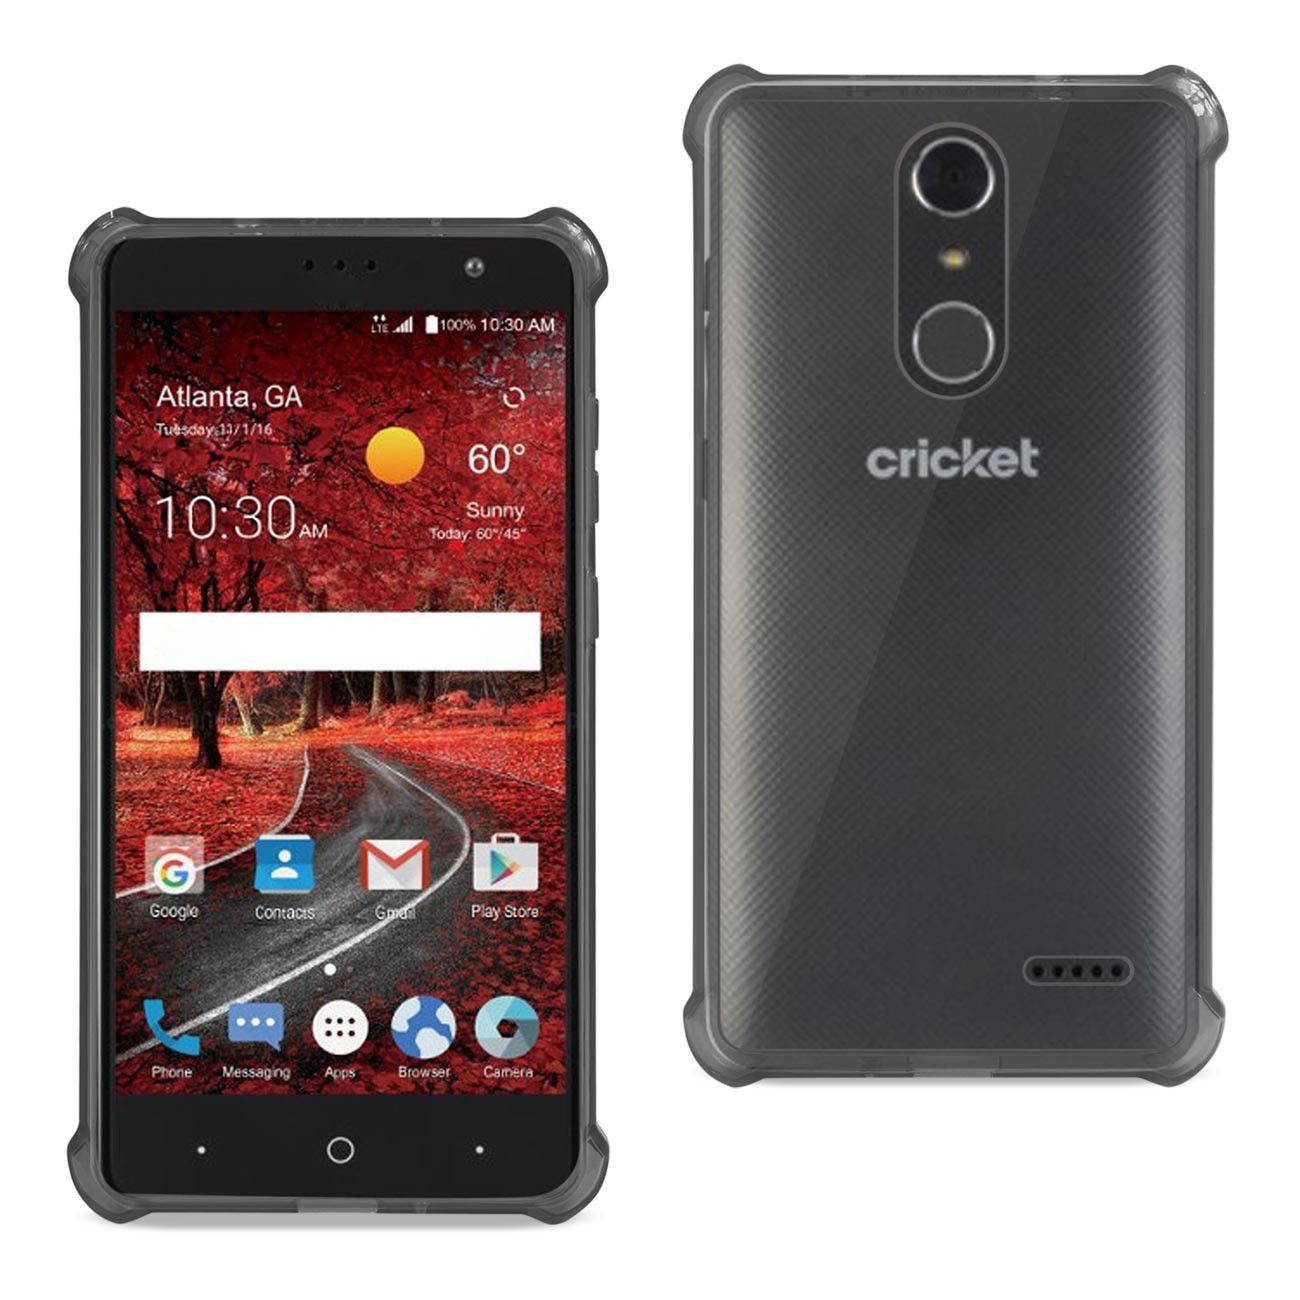 REIKO ZTE GRAND X4 BUMPER CASE WITH AIR CUSHION PROTECTION